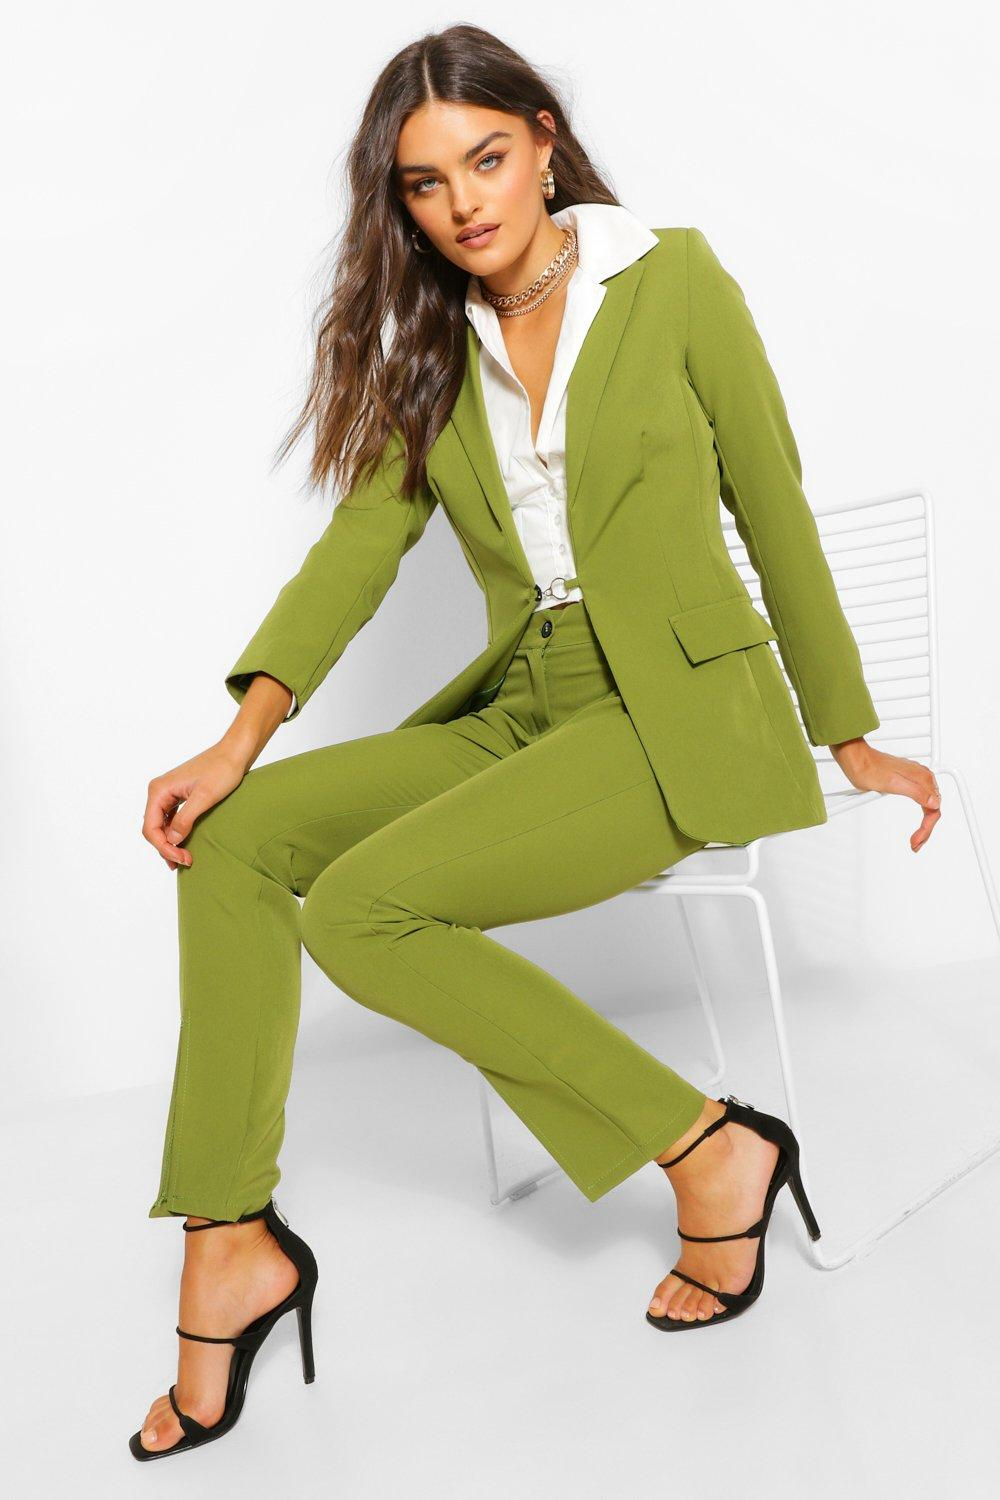 Vintage Suits Women | Work Wear & Office Wear Womens Tailored Split Front Skinny Trouser - Green - 10 $22.00 AT vintagedancer.com